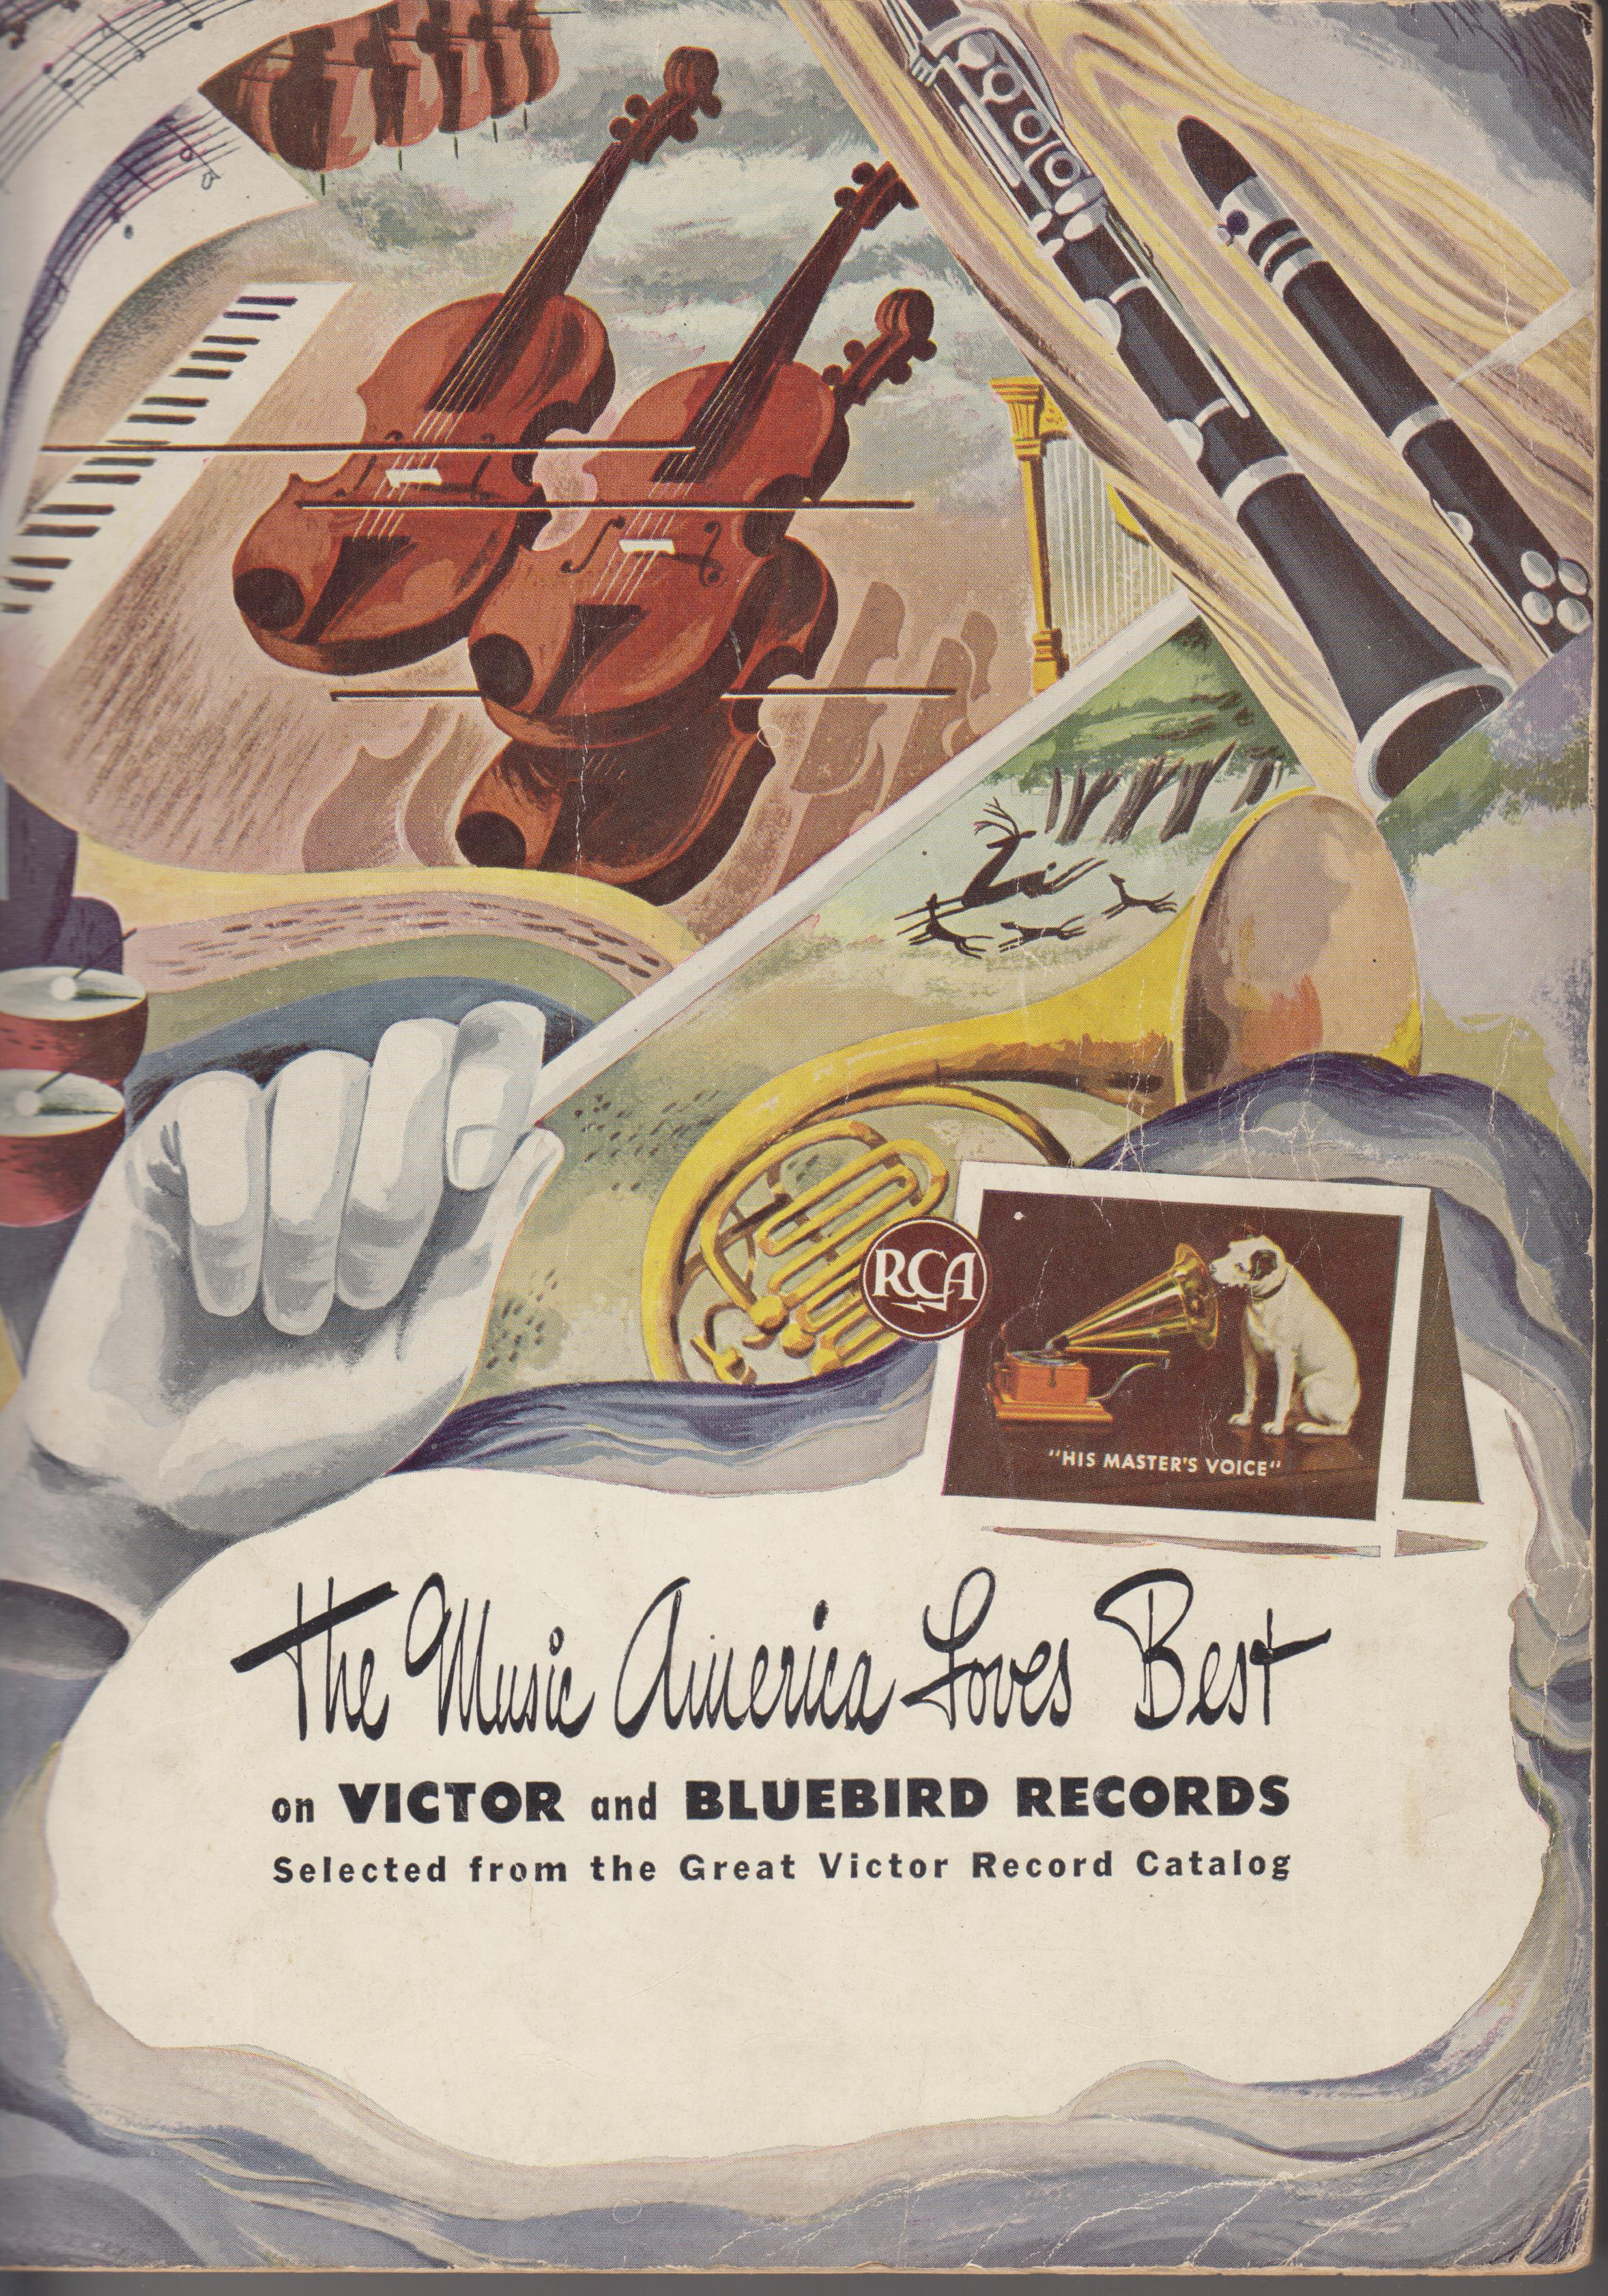 Image for Music America Loves Best on Victor and Bluebird Records